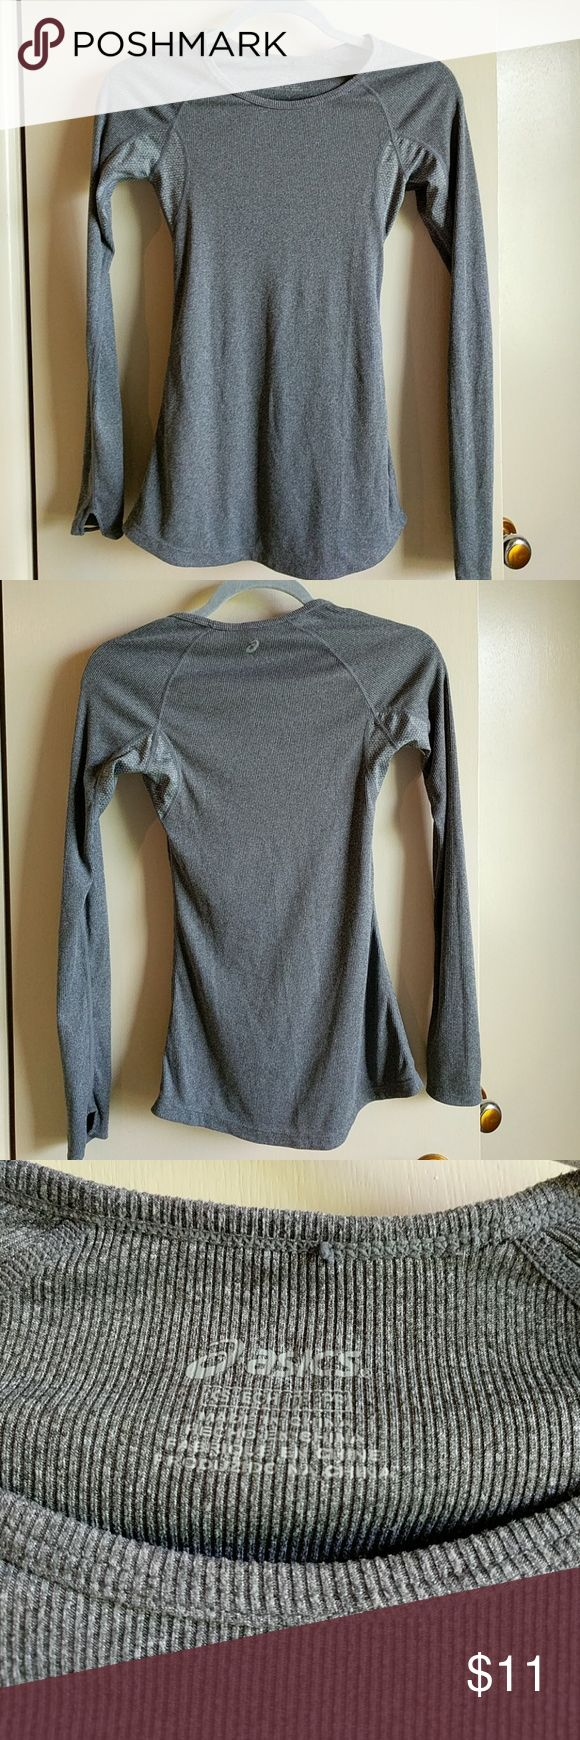 OASIS/ ribbed long sleeve shirt Oasis ribbed long sleeved grey shirt. Has thumb holes and breathable fabric in the armpit area. In excellcent used condition. Great cold weather work out top. Oasis Tops Tees - Short Sleeve